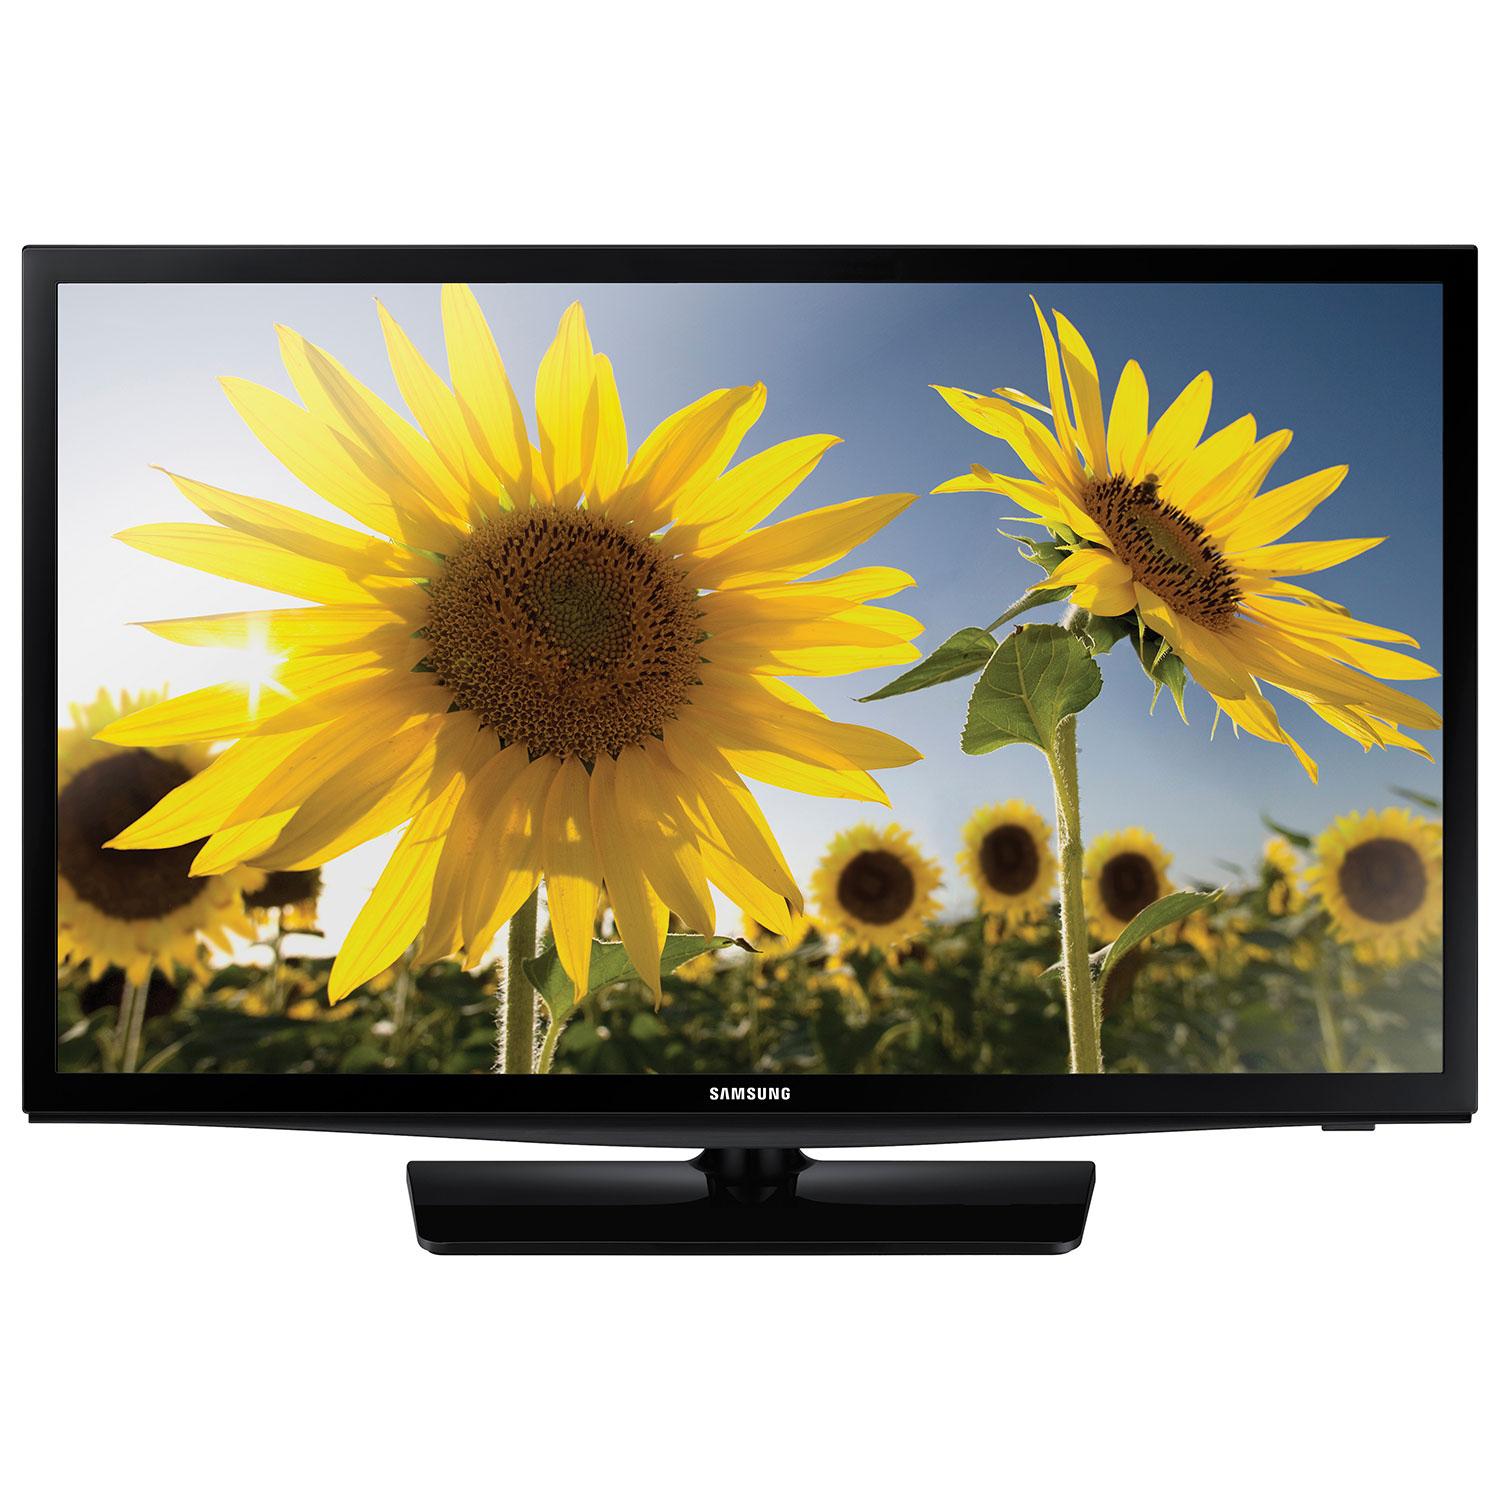 Small Televisions For Bedrooms Best Small Tv Brands 24 Inch Tvs Or Less Best Buy Canada